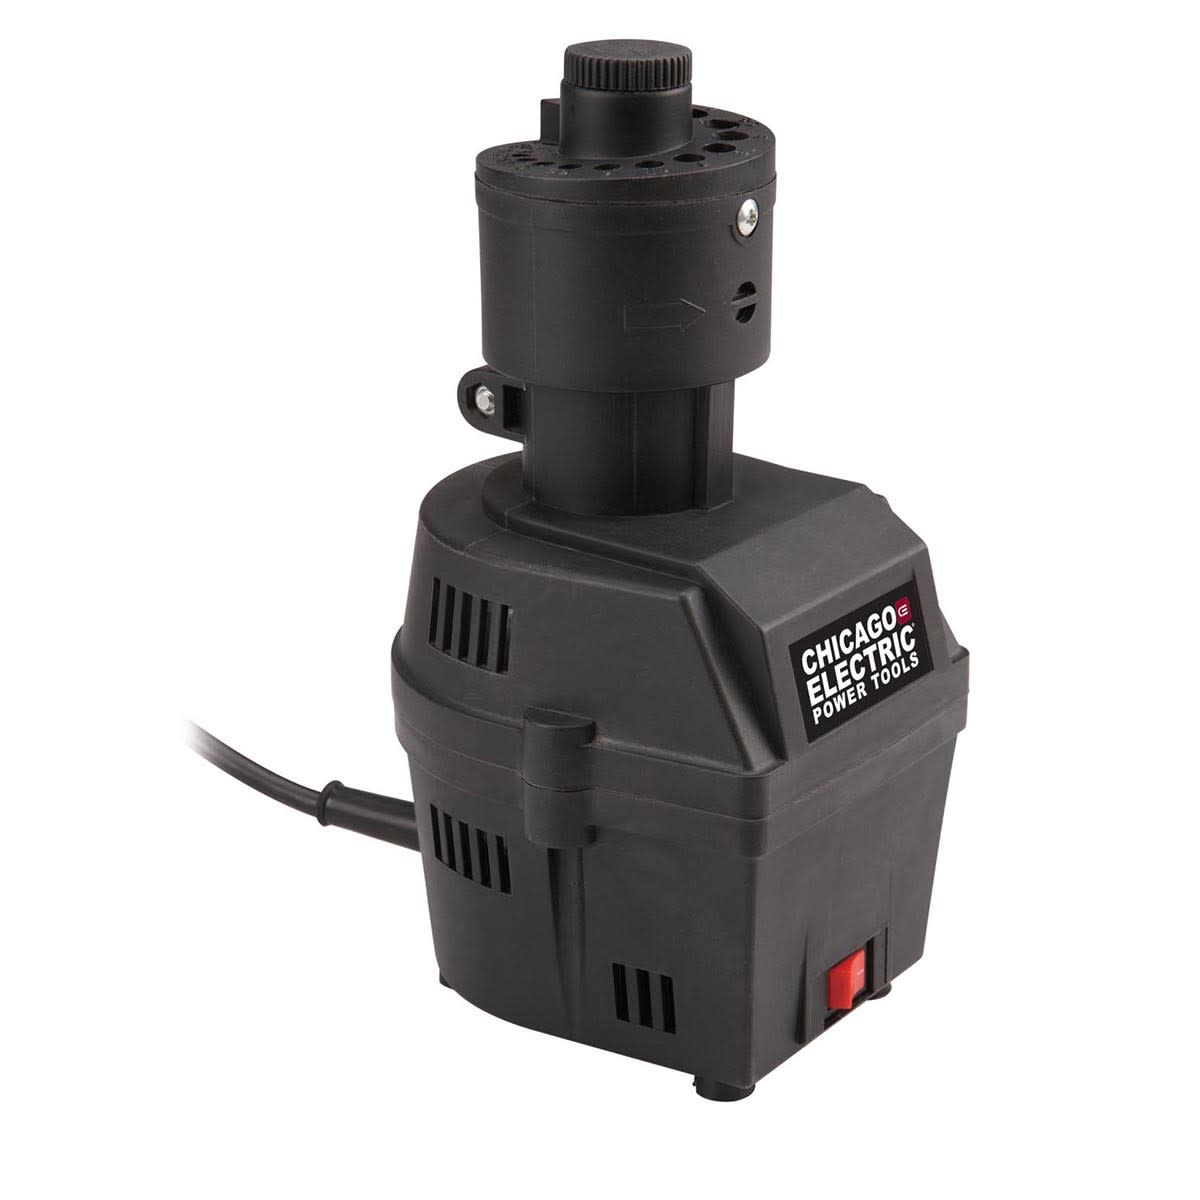 Chicago Electric Power Tool drill sharpener